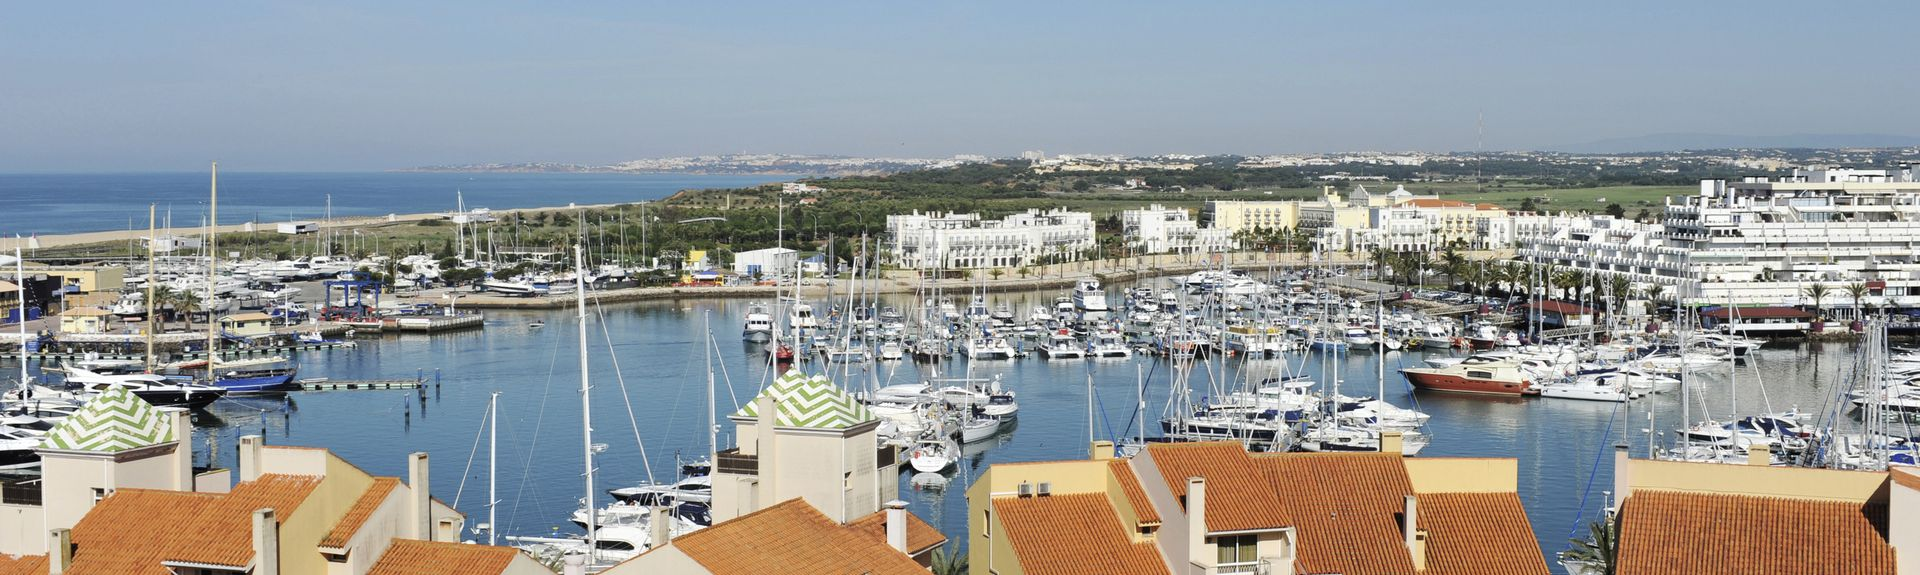 Vilamoura Marina, Vilamoura, Faro District, Portugal